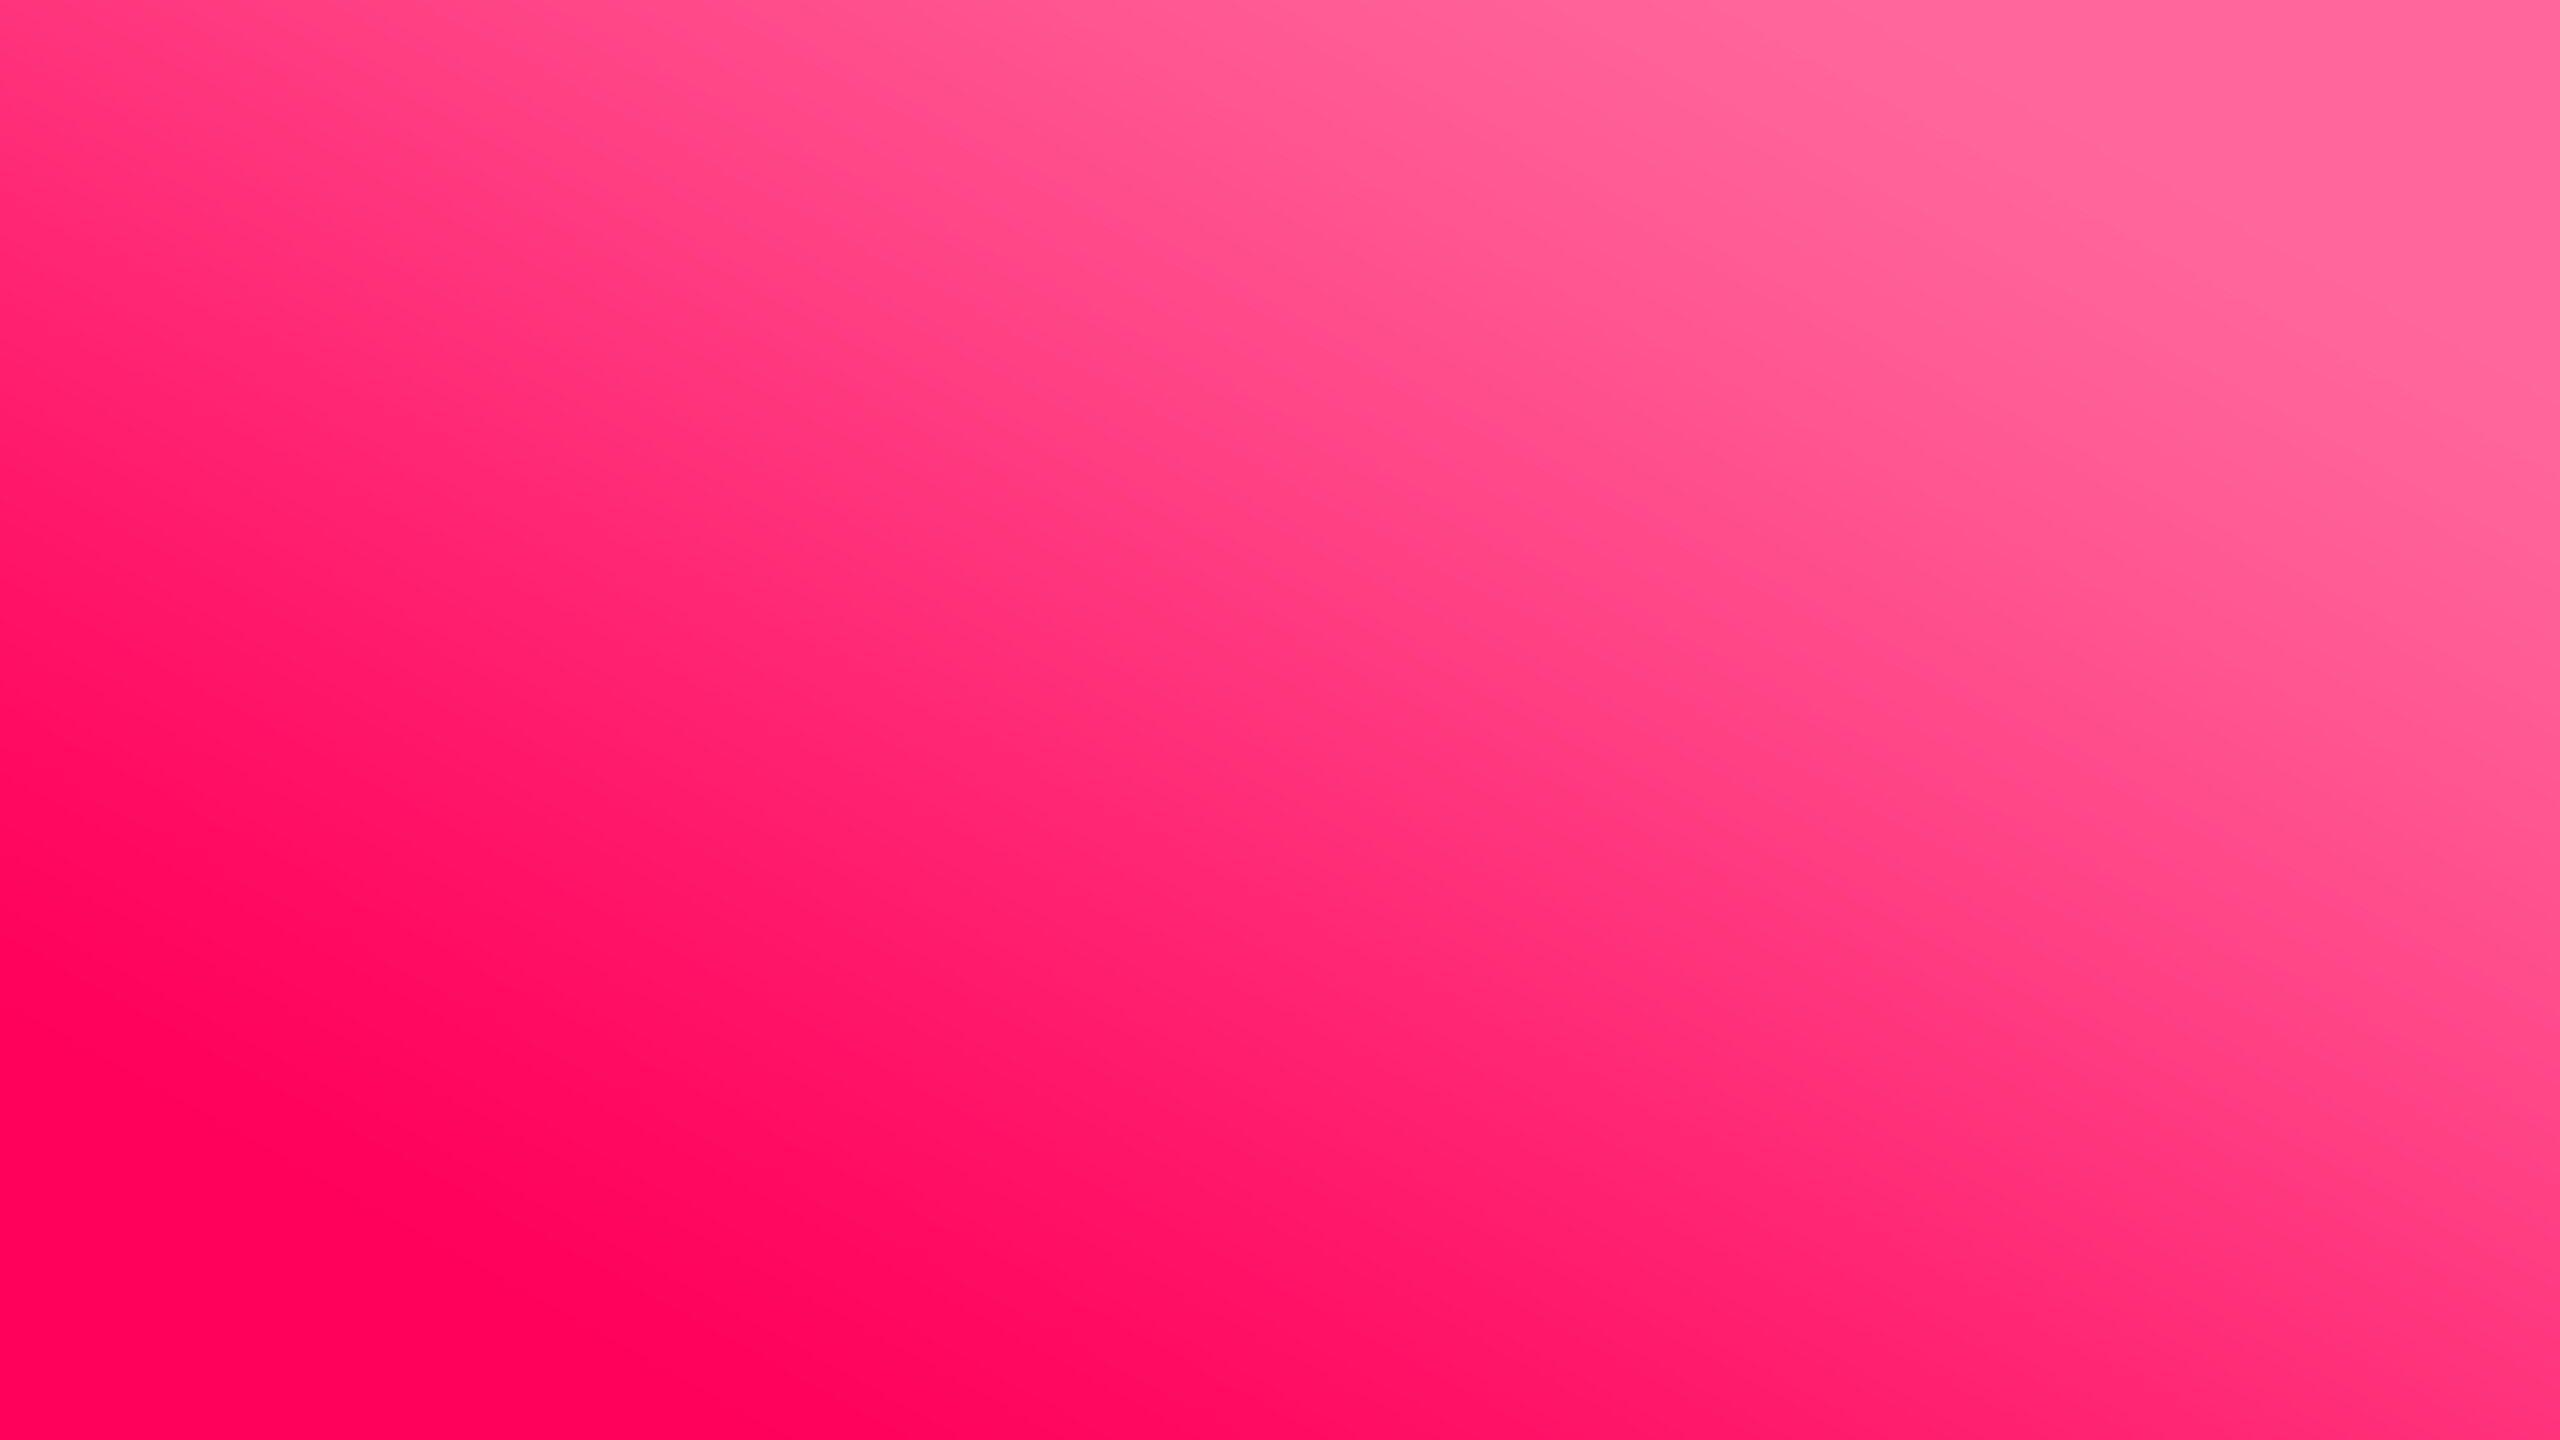 Pink Color Wallpapers - Wallpaper Cave